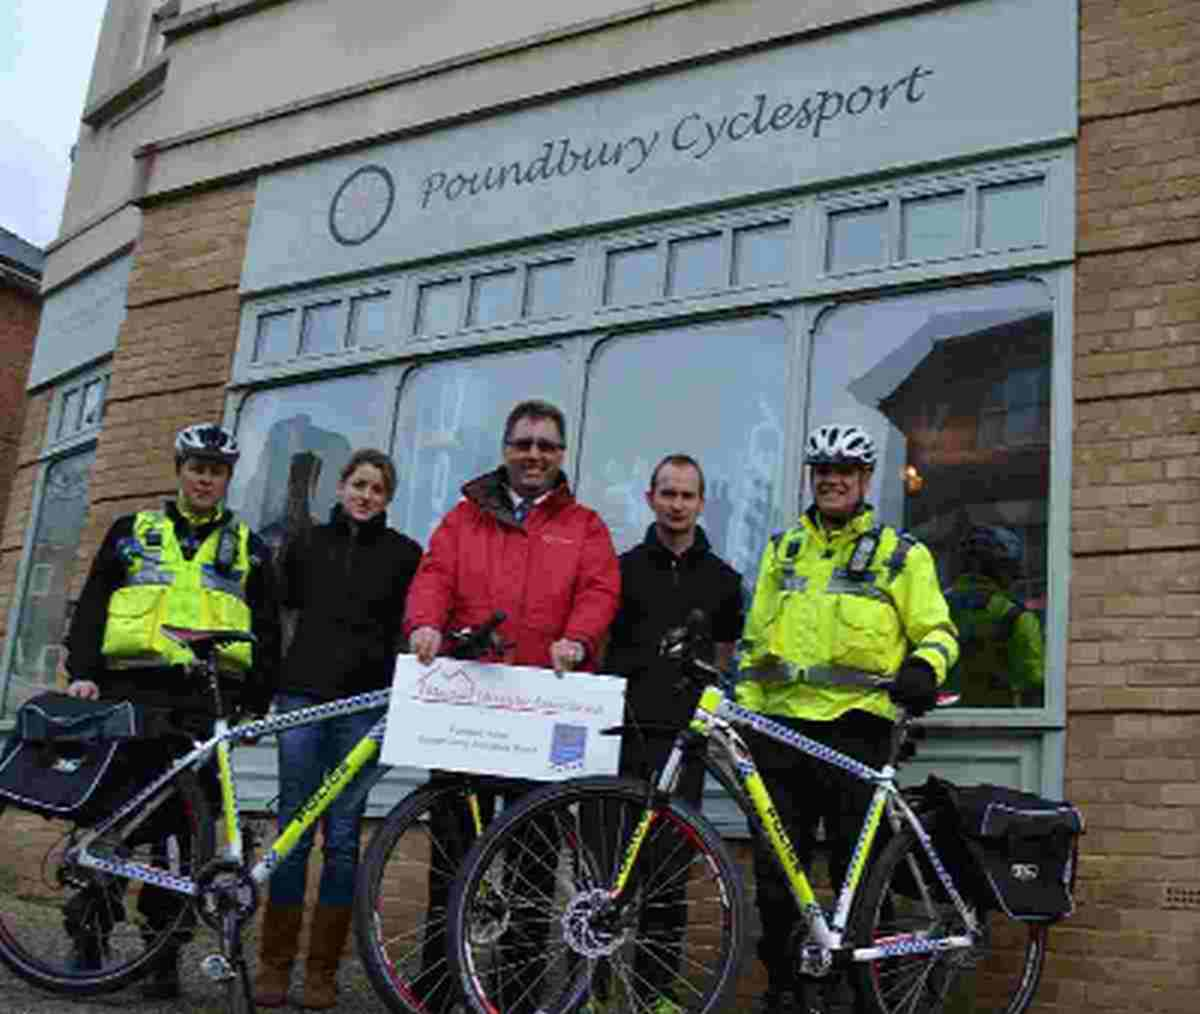 ON YOUR BIKES: From left, PCSO Sarah Hart, Heidi Gould, Ken Bodycombe, Darren Matthews, and PCSO Nick Maton